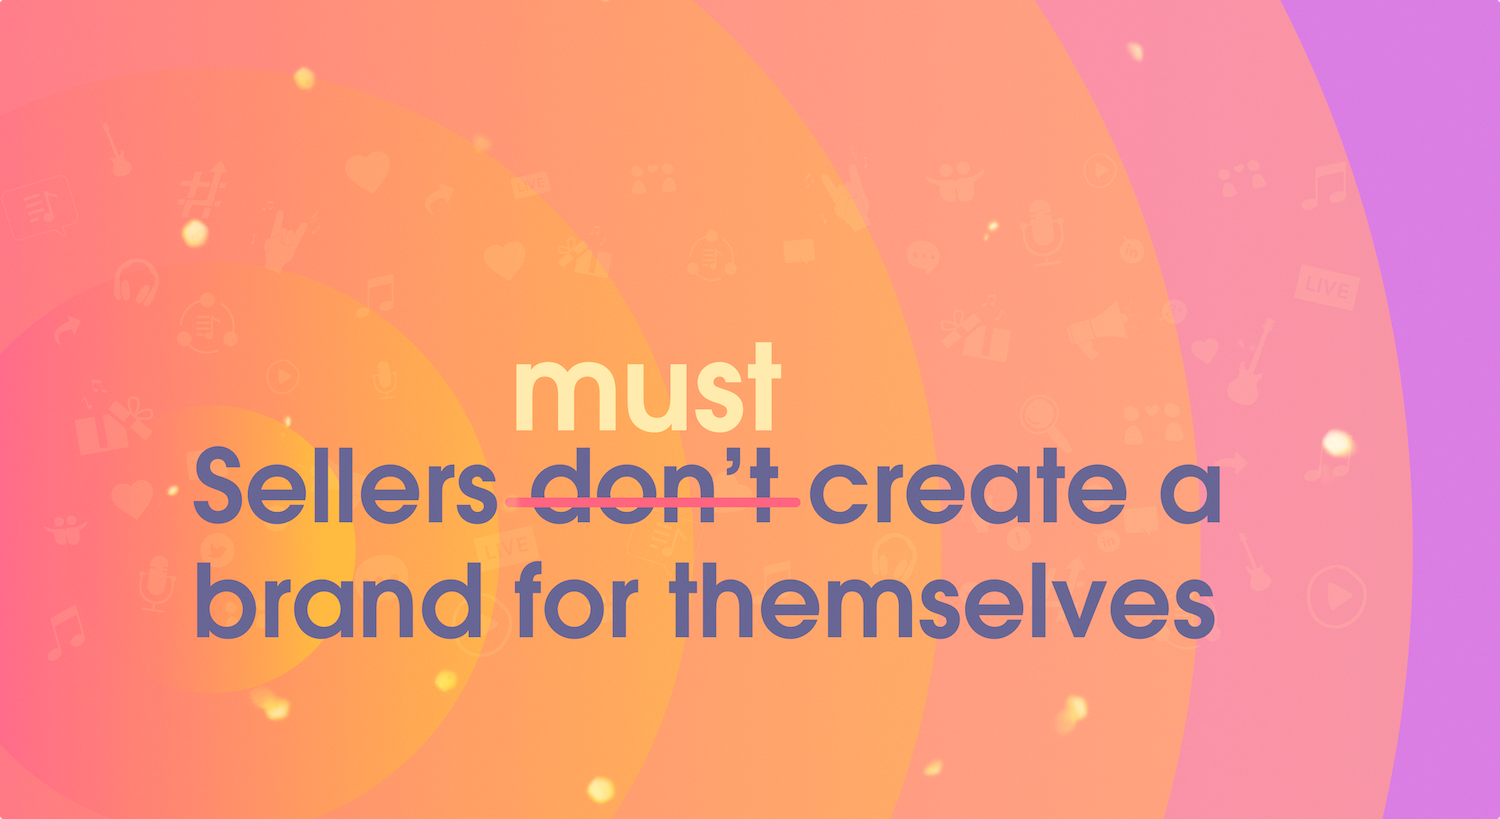 Sellers don't create a brand for themselves.